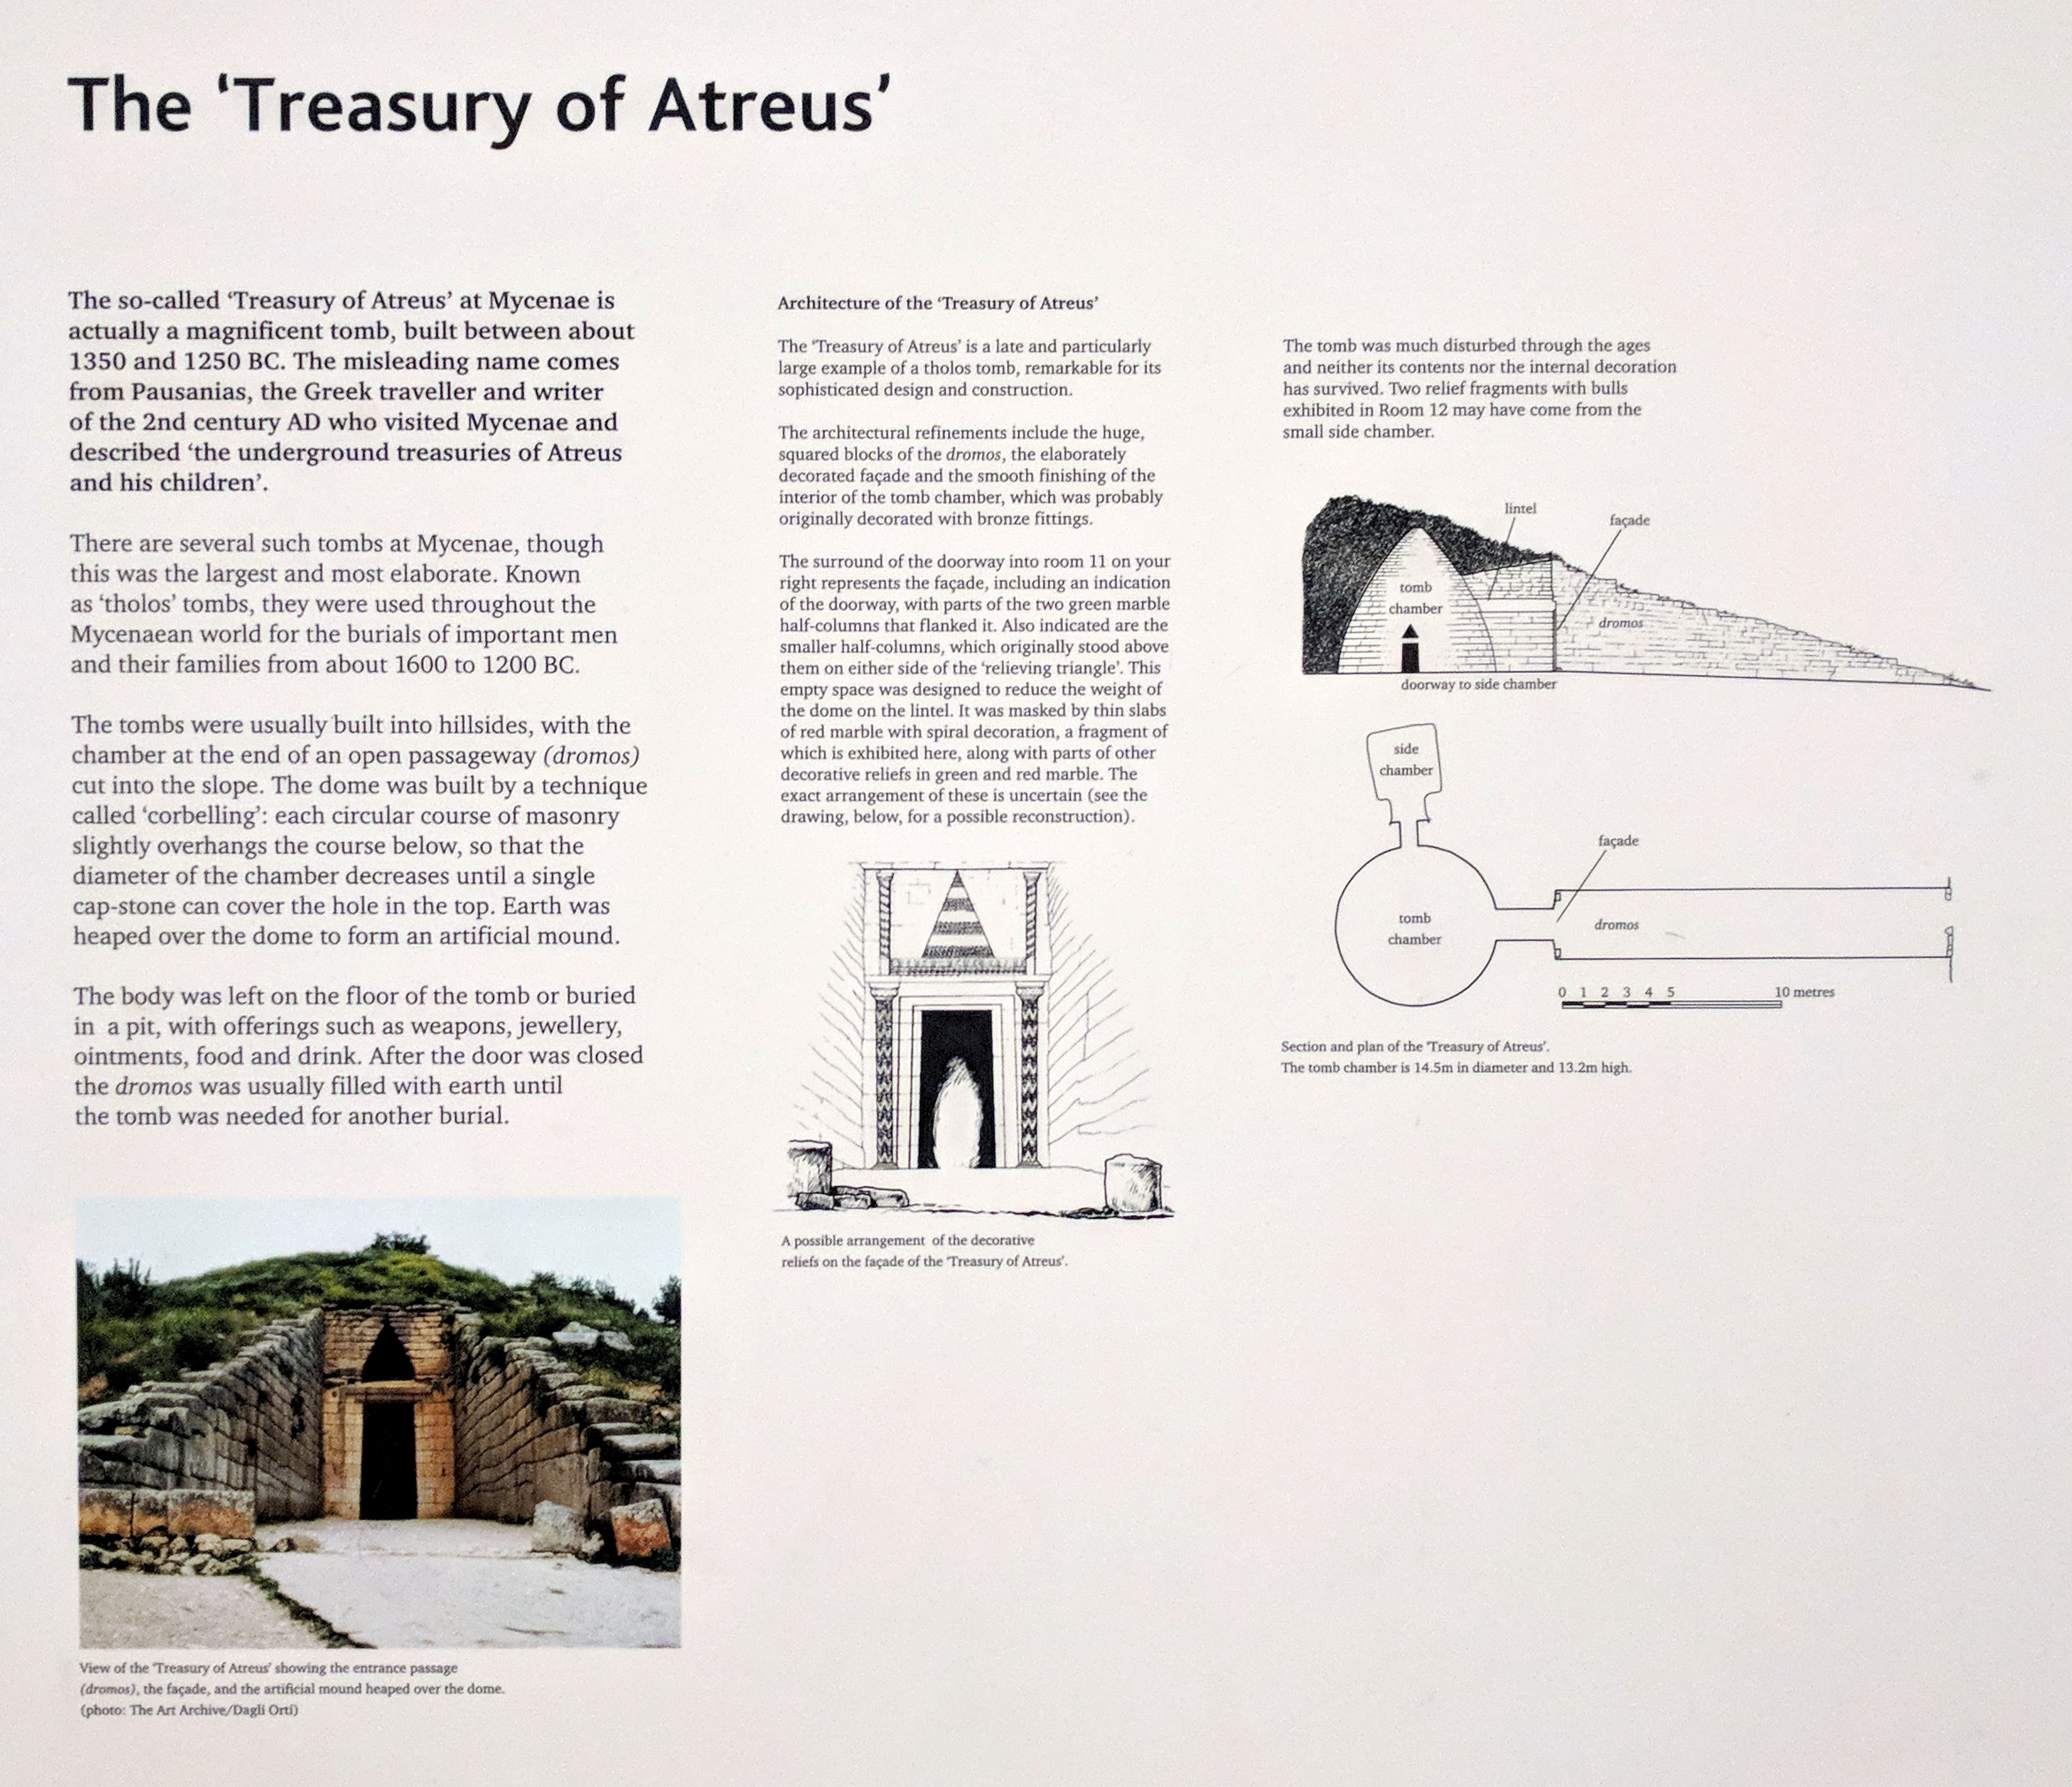 The sign explaining the Treasury and the fragments to the right along with the massive columns .